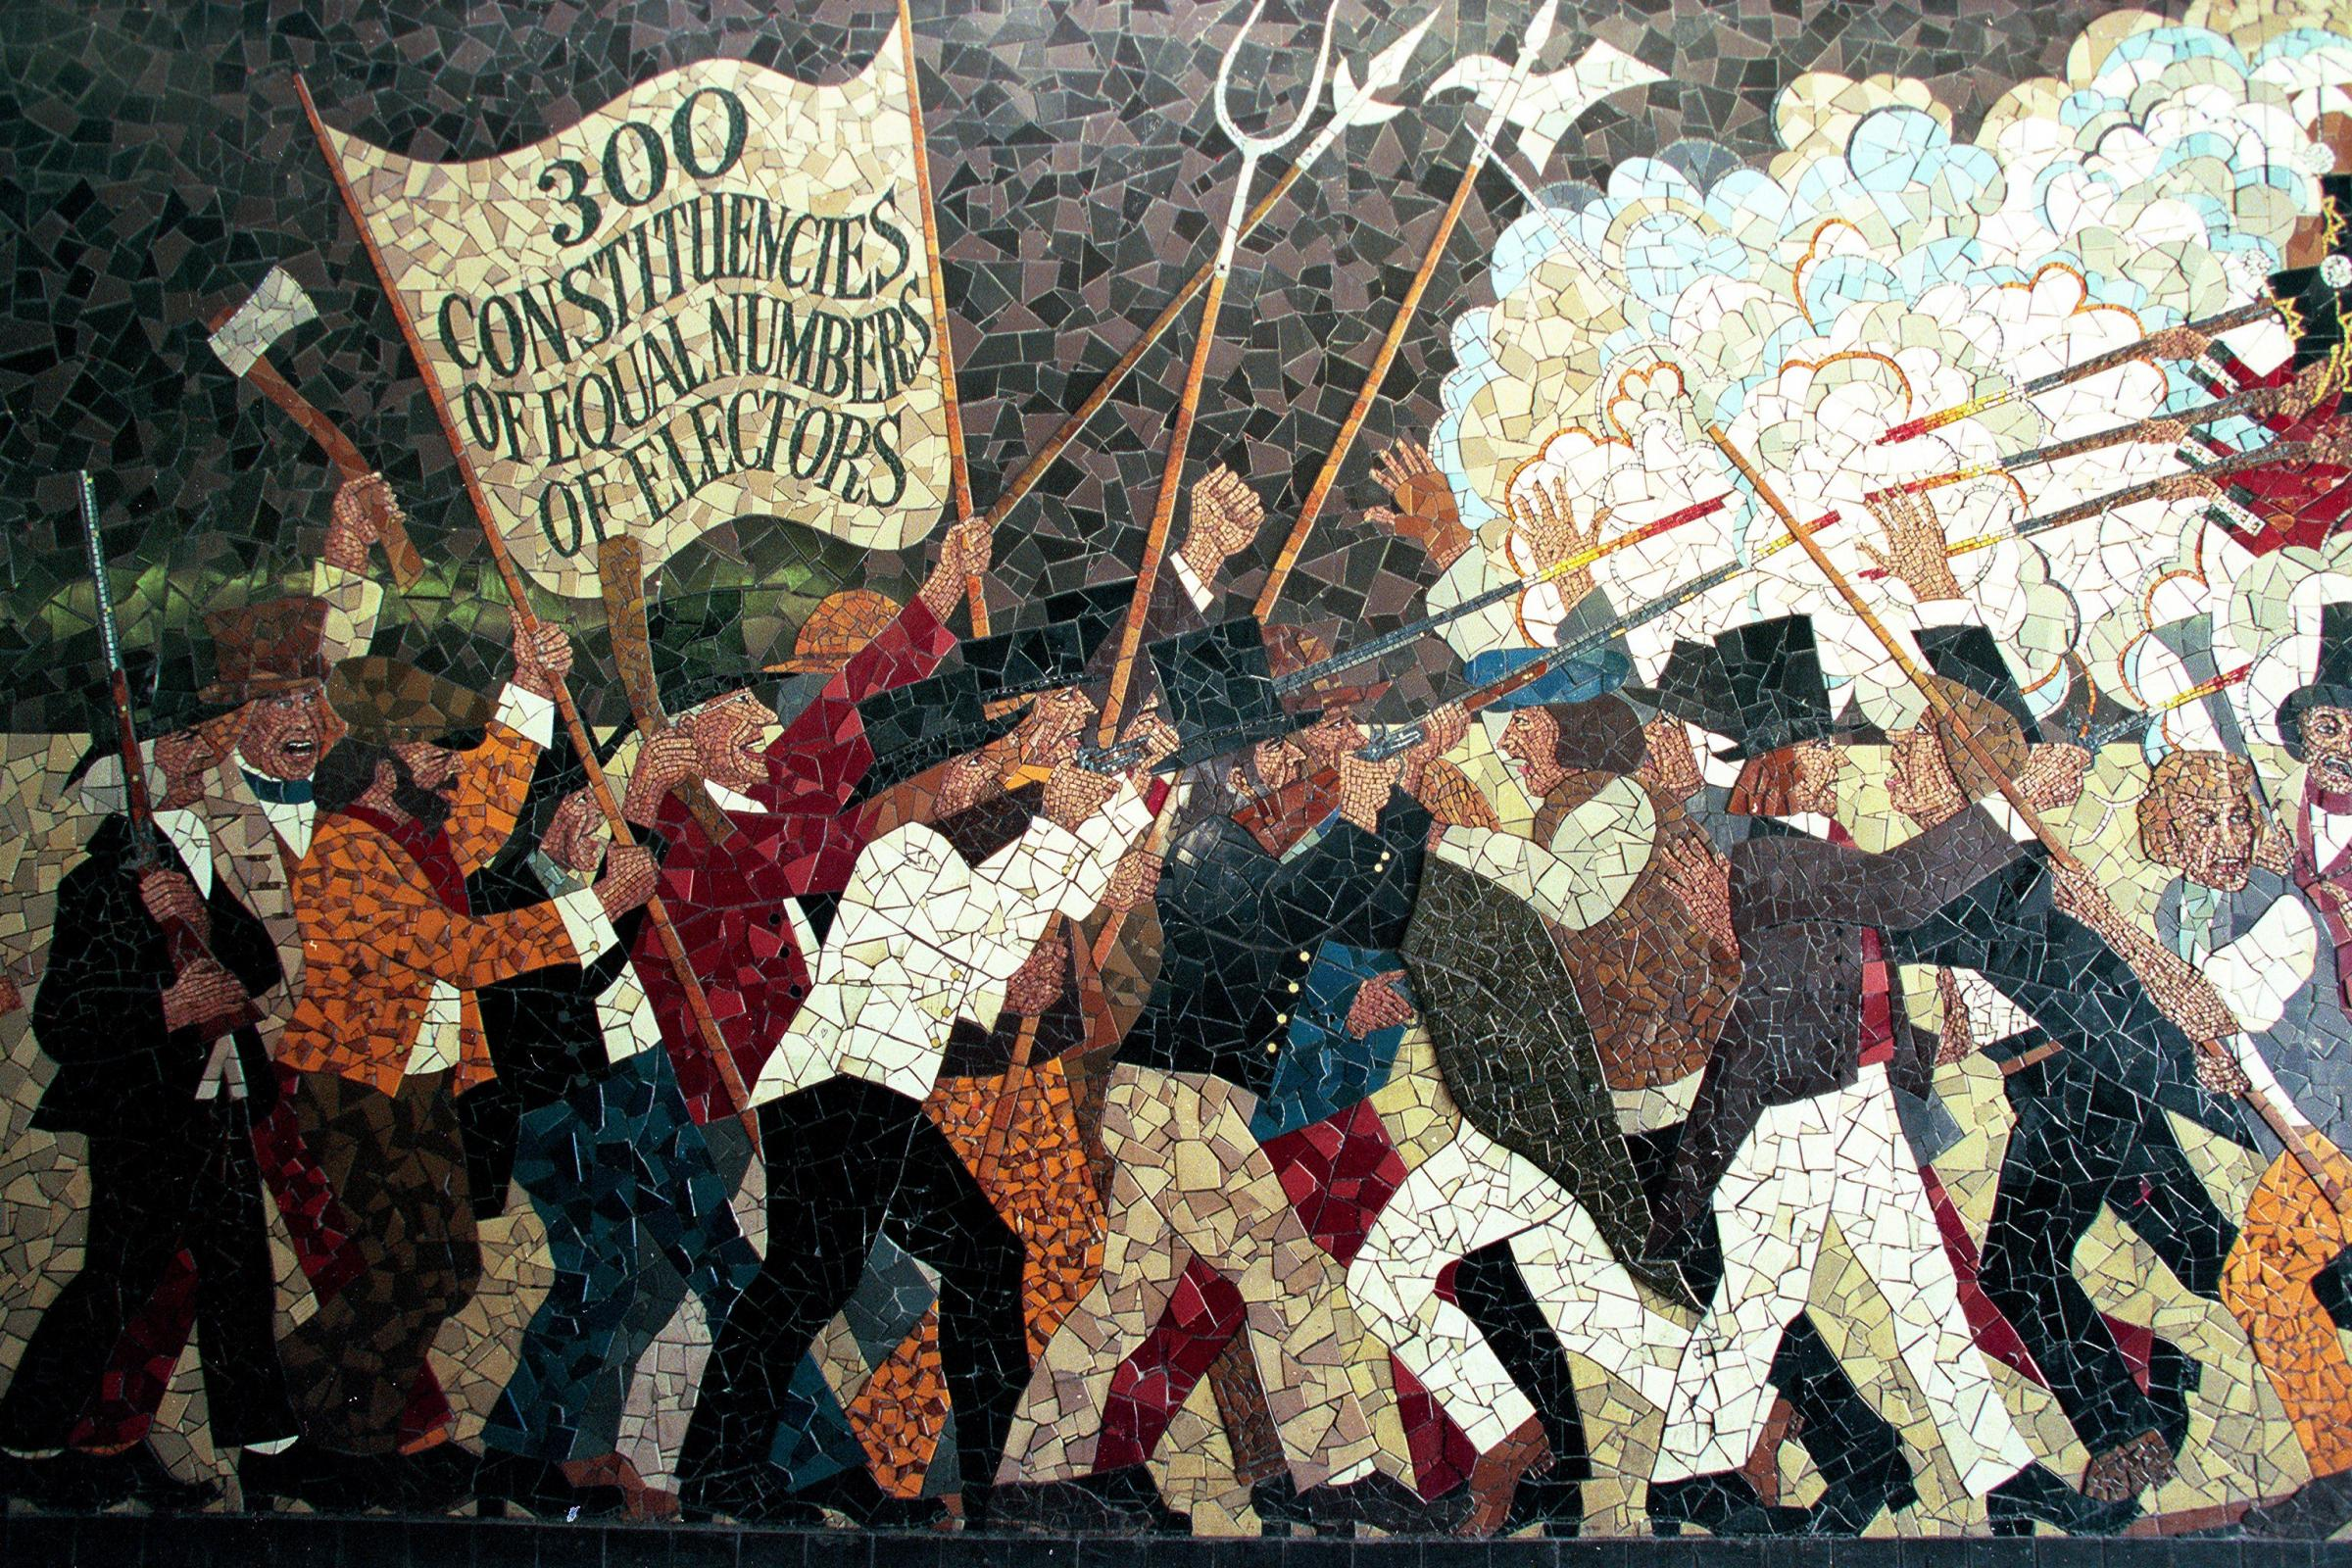 chartist movement Chartism definition, the principles or movement of a party of political reformers, chiefly workingmen, in england from 1838 to 1848: so called from the document (people's charter or national charter) that contained a statement of their principles and demands.